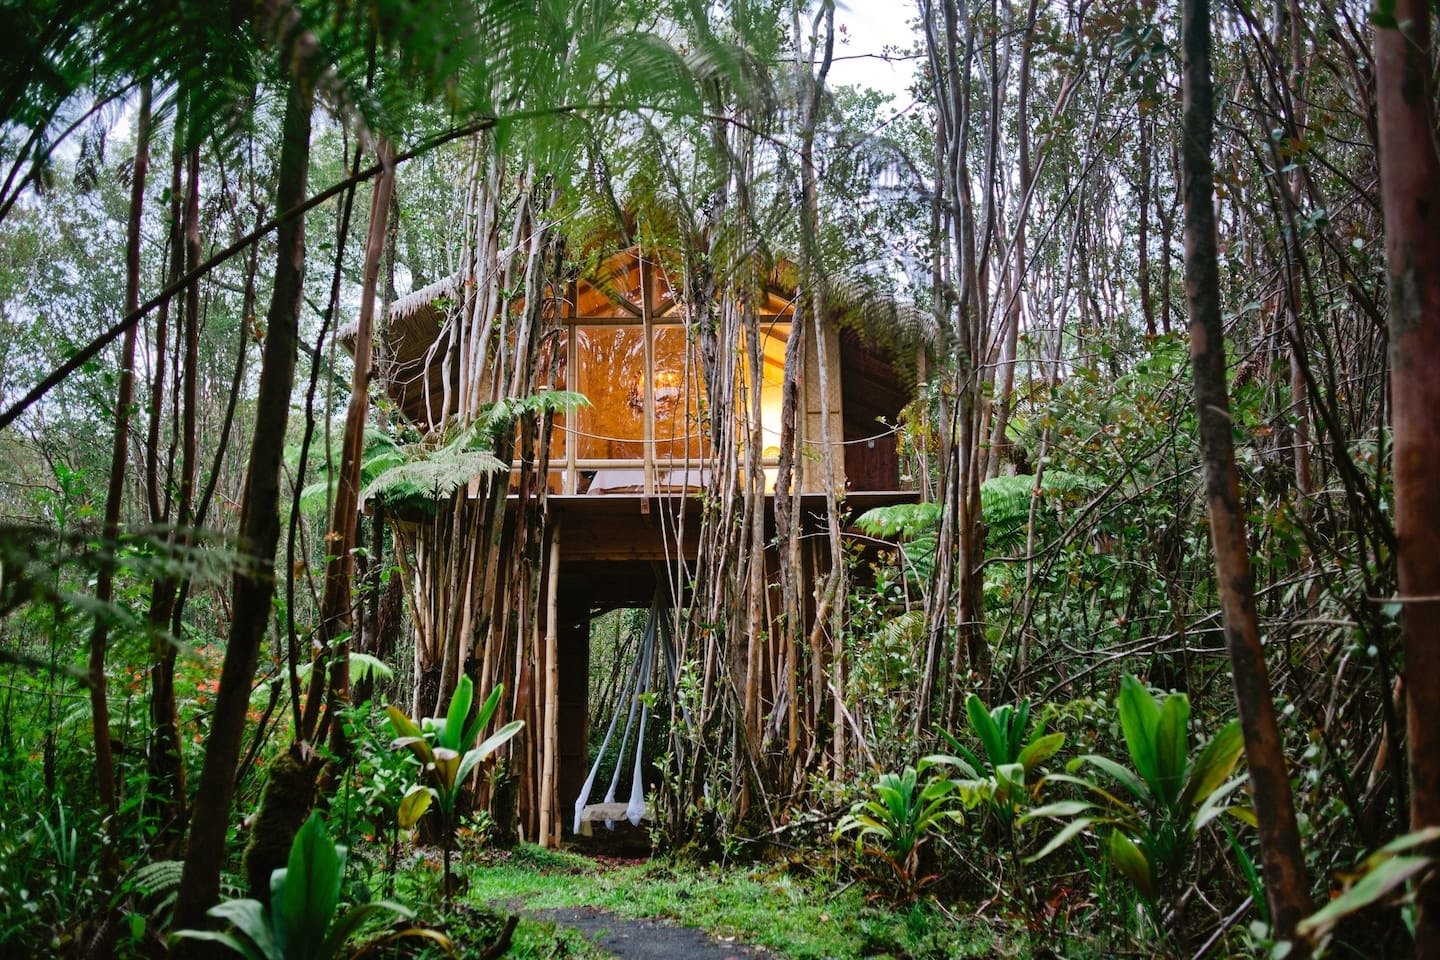 The Dreamy Tropical Tree House in Fern Forest, Hawaii, is located 10 miles from Volcano National Park.  Photo 17 of 24 in Check Out These 23 Tiny Houses Perfect for an Autumn Getaway